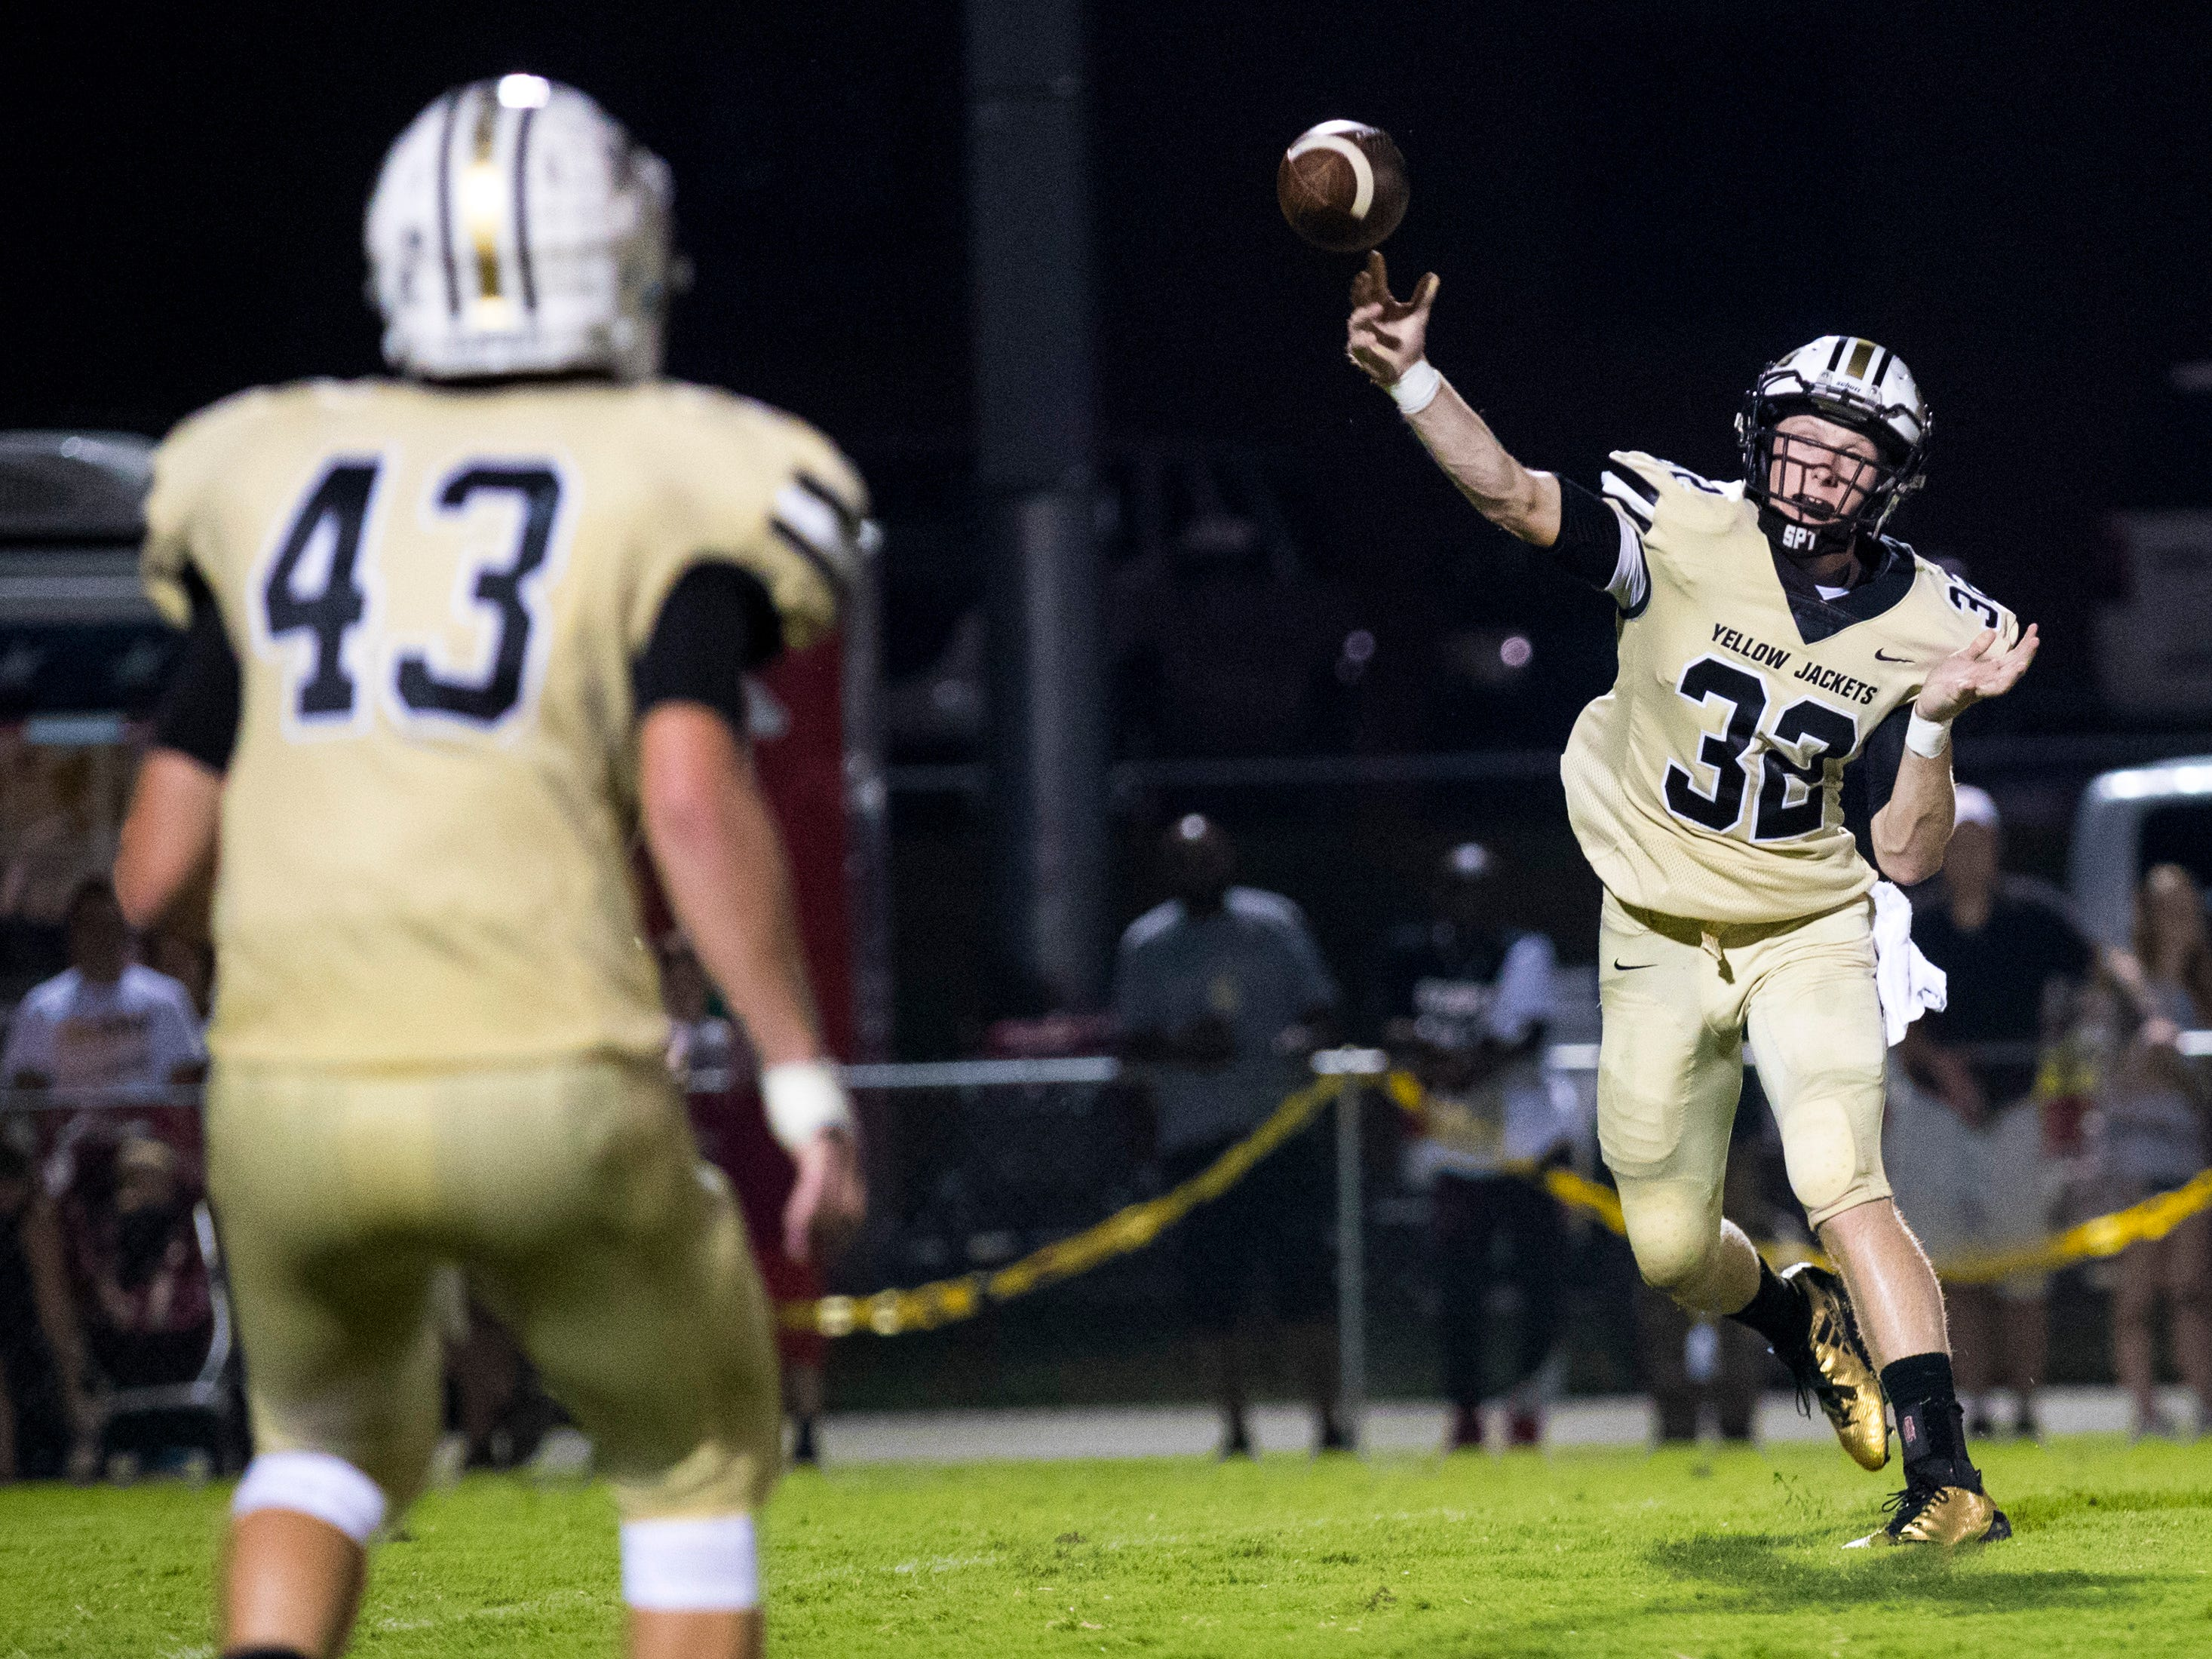 Springfield's Bryan Hayes (32) passes to Springfield's Mikie Neal (43) during Springfield's game against White House at Springfield High School in Springfield on Friday, Sept. 14, 2018.